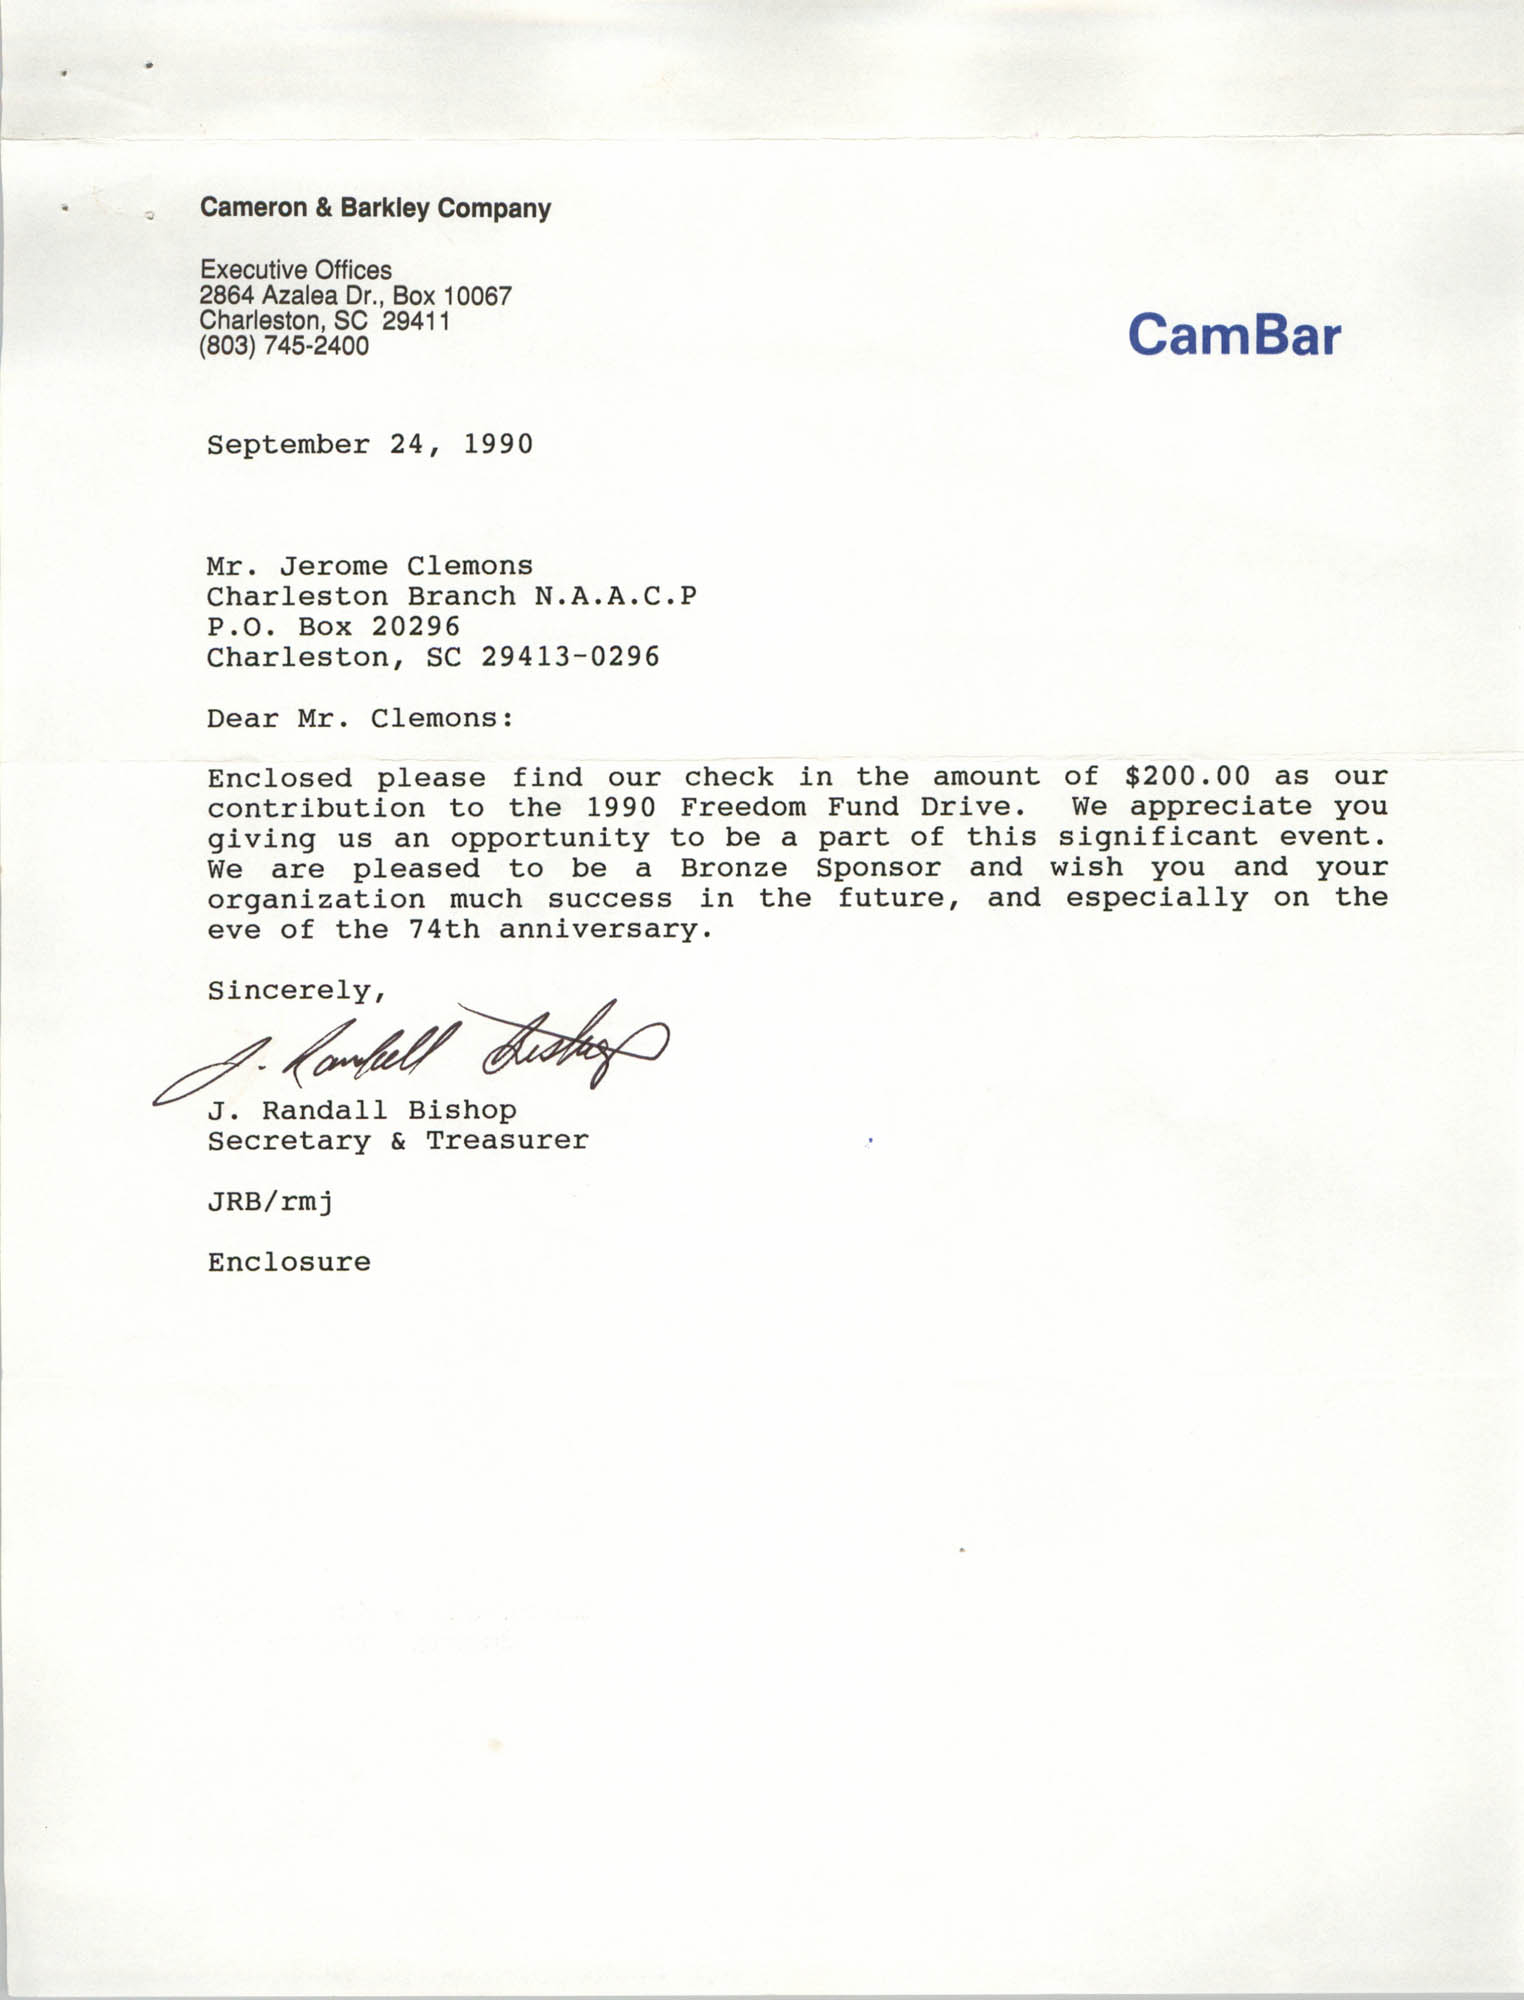 Letter from J. Randall Bishop to Jerome Clemons, September 24, 1990